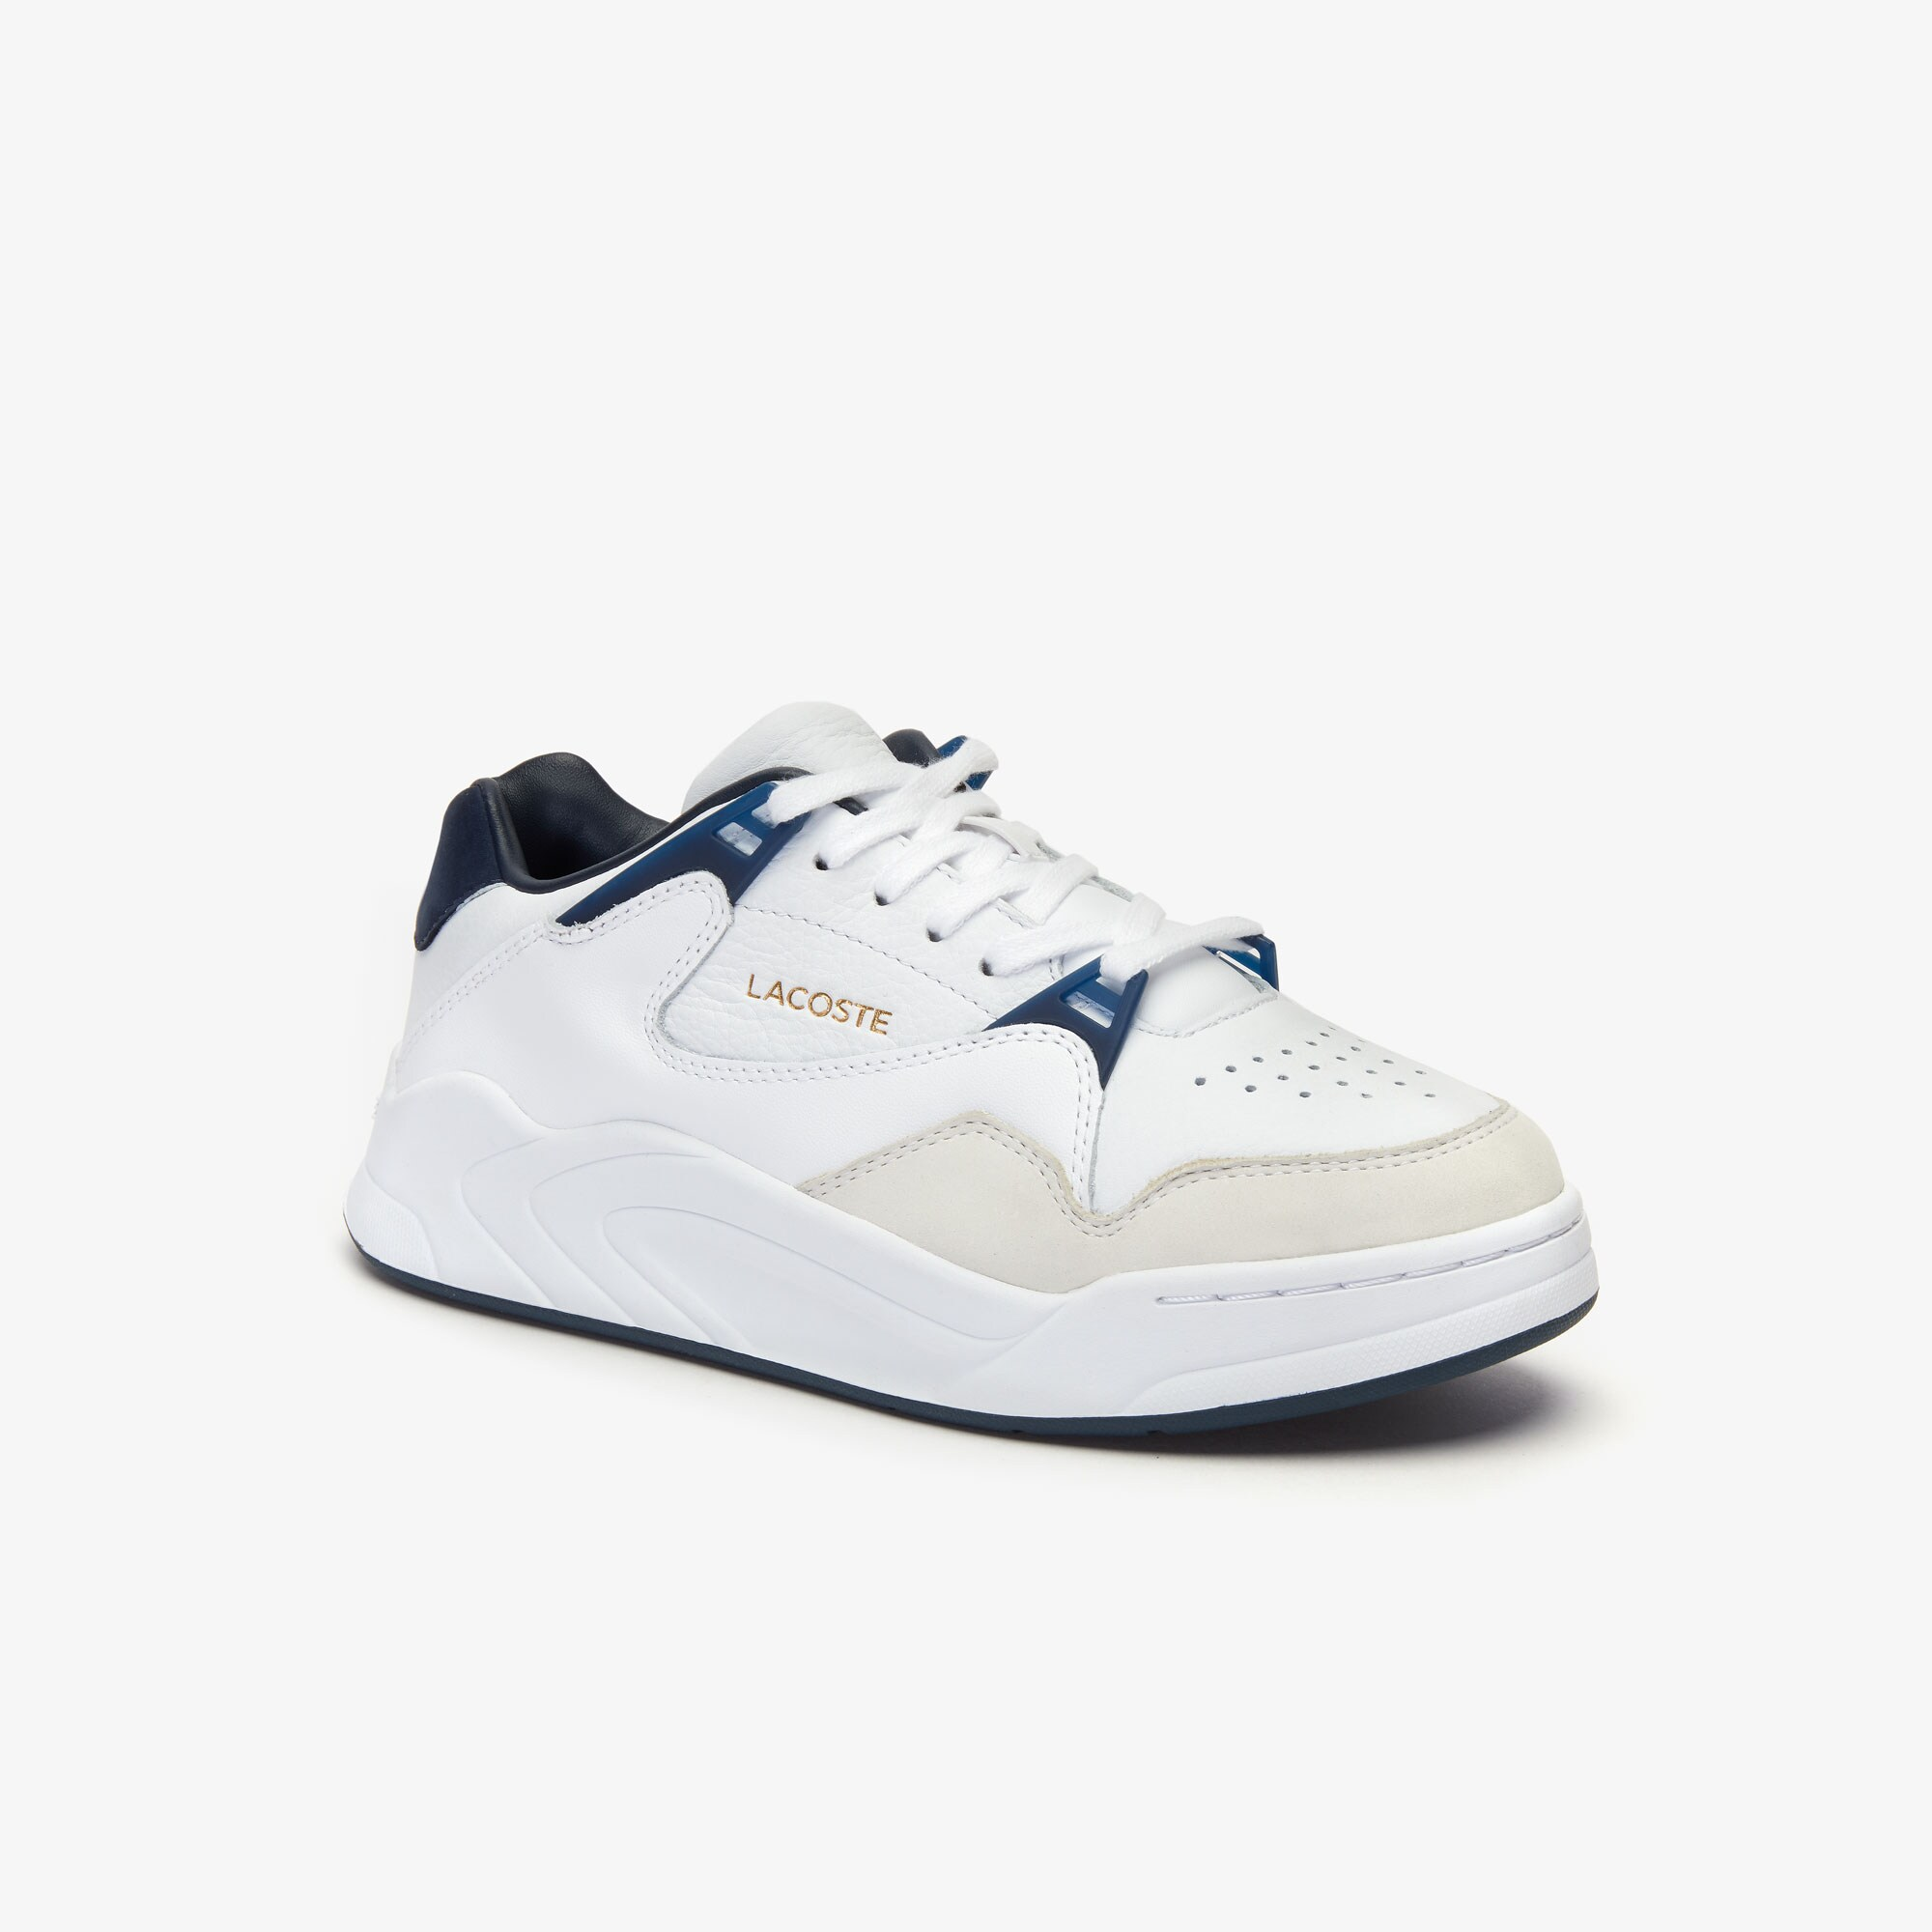 20571f143 Lacoste shoes for women: Boots, Trainers, Sneakers   LACOSTE